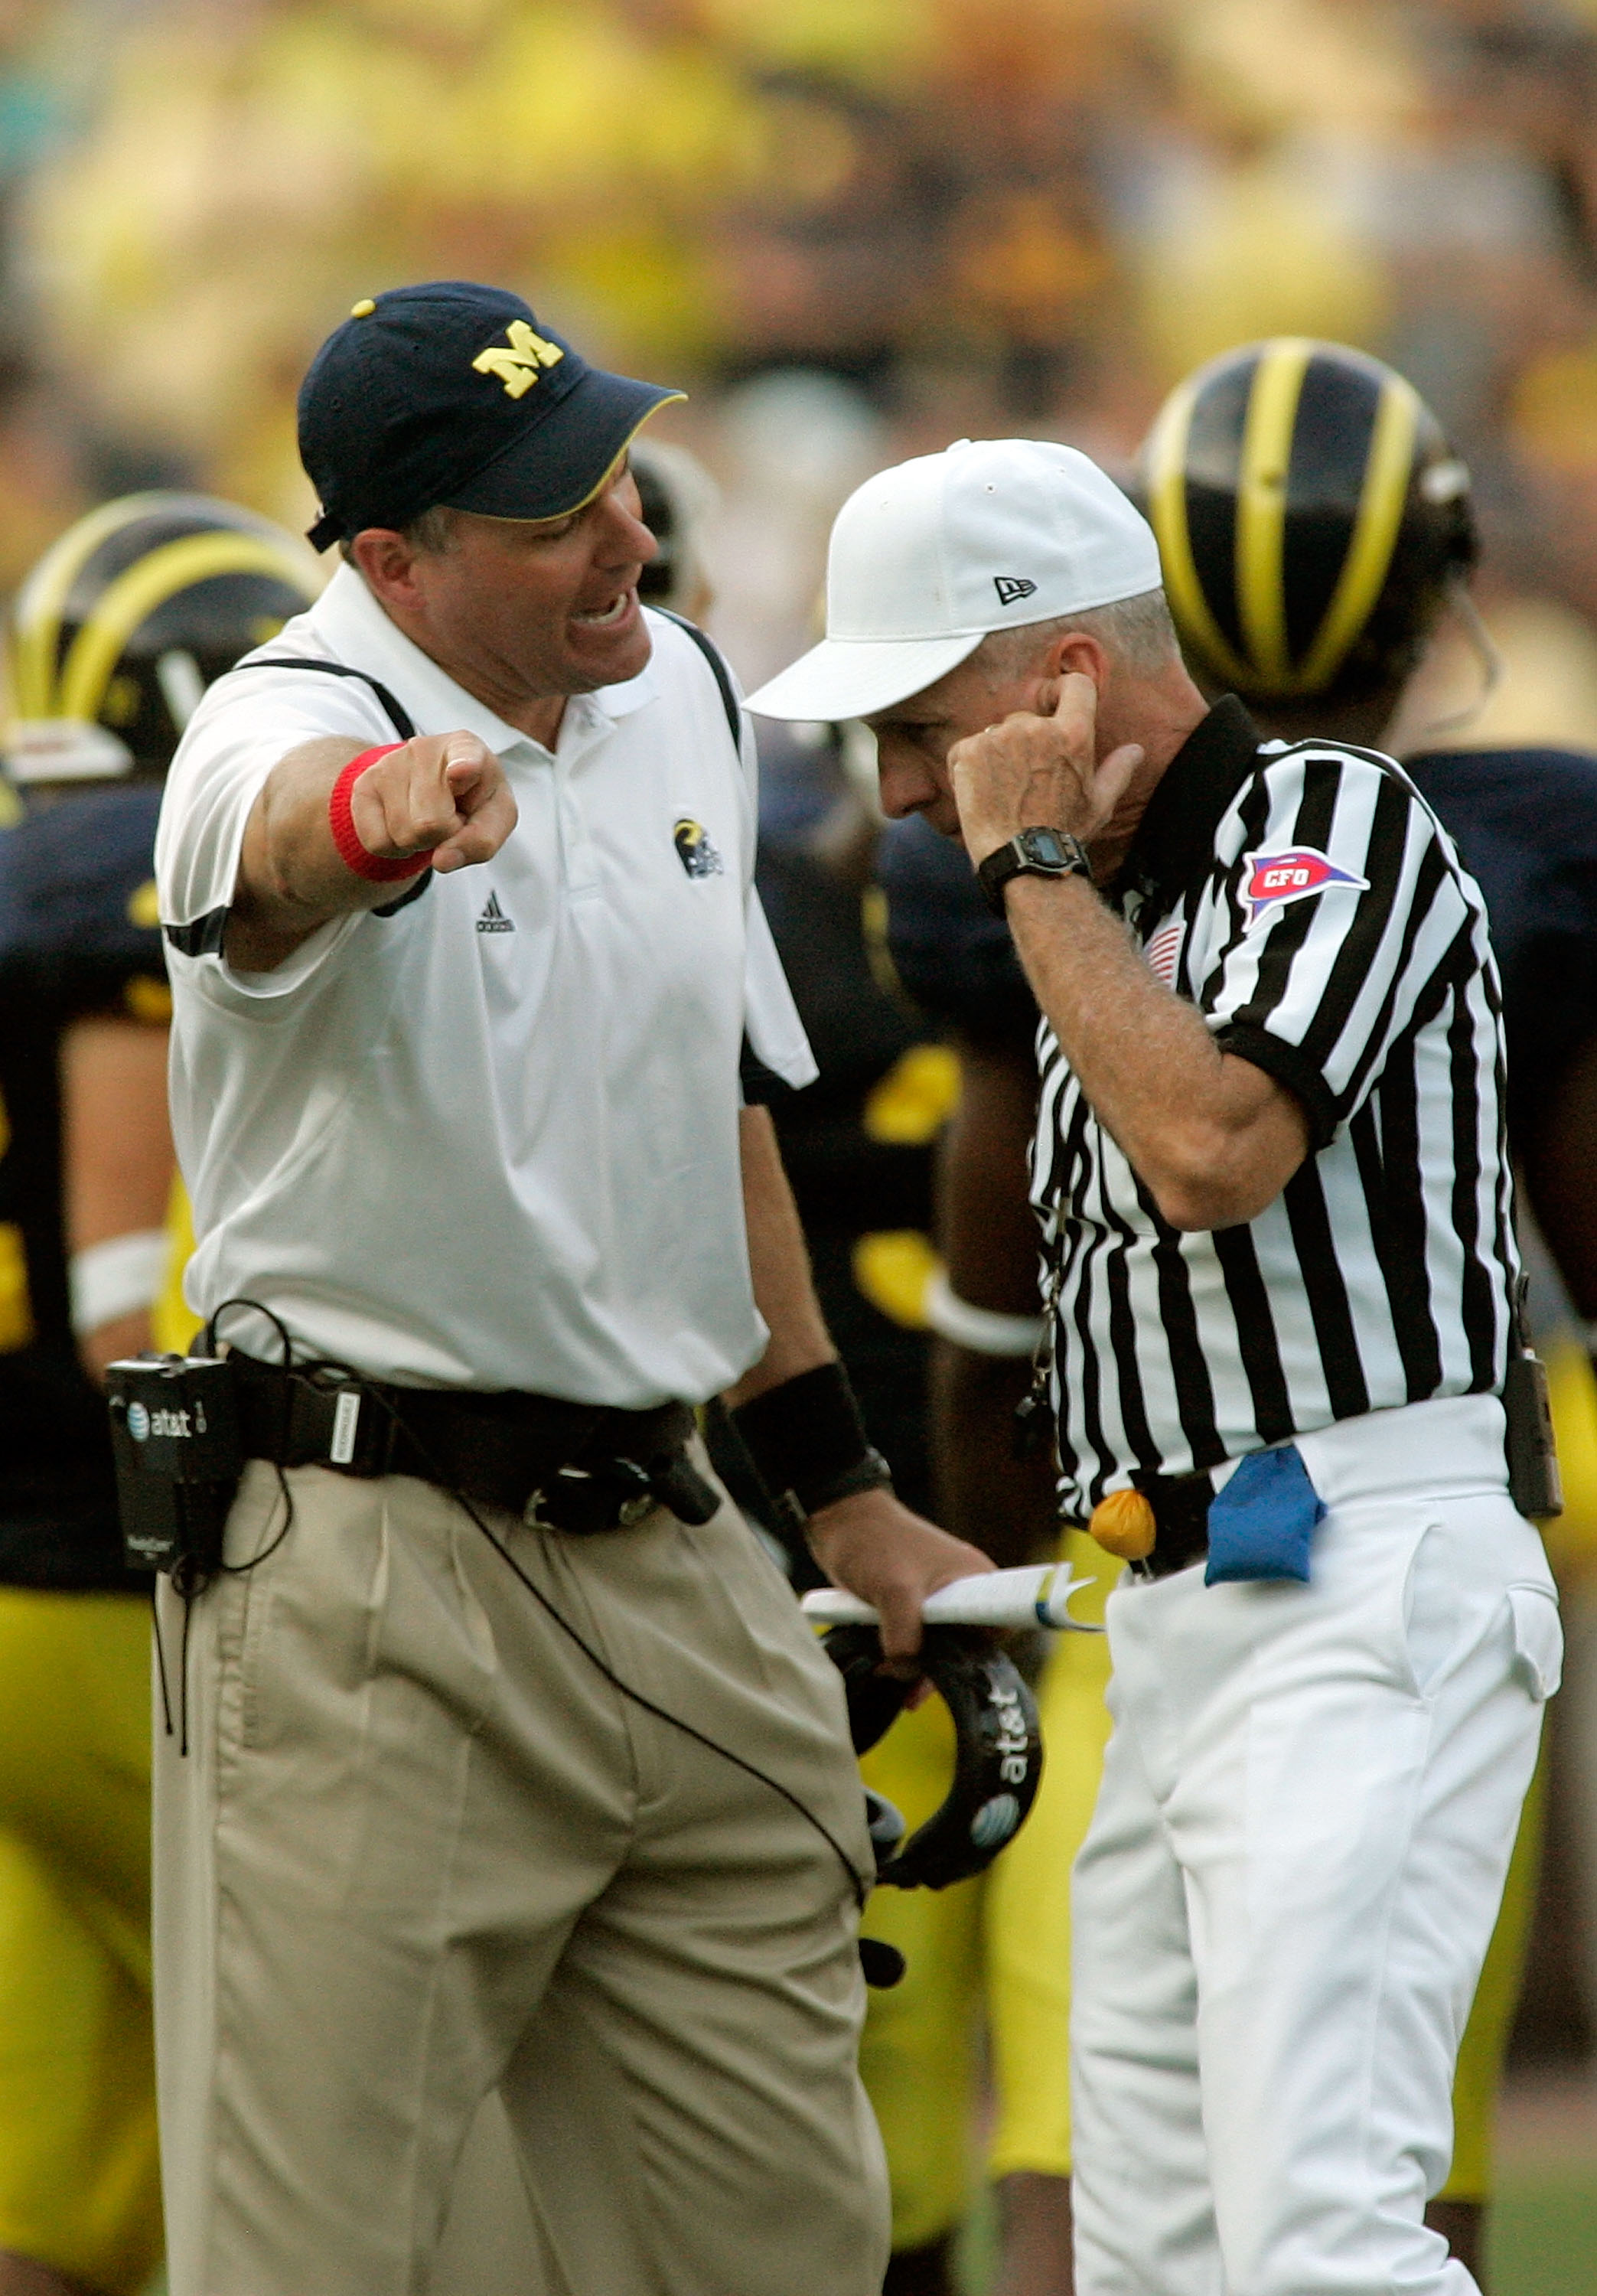 ANN ARBOR, MI - SEPTEMBER 12:  Michigan head coach Rich Rodriguez argues a call with an official in the second half against Notre Dame at Michigan Stadium on September 12, 2009 in Ann Arbor, Michigan.  (Photo by Domenic Centofanti/Getty Images)